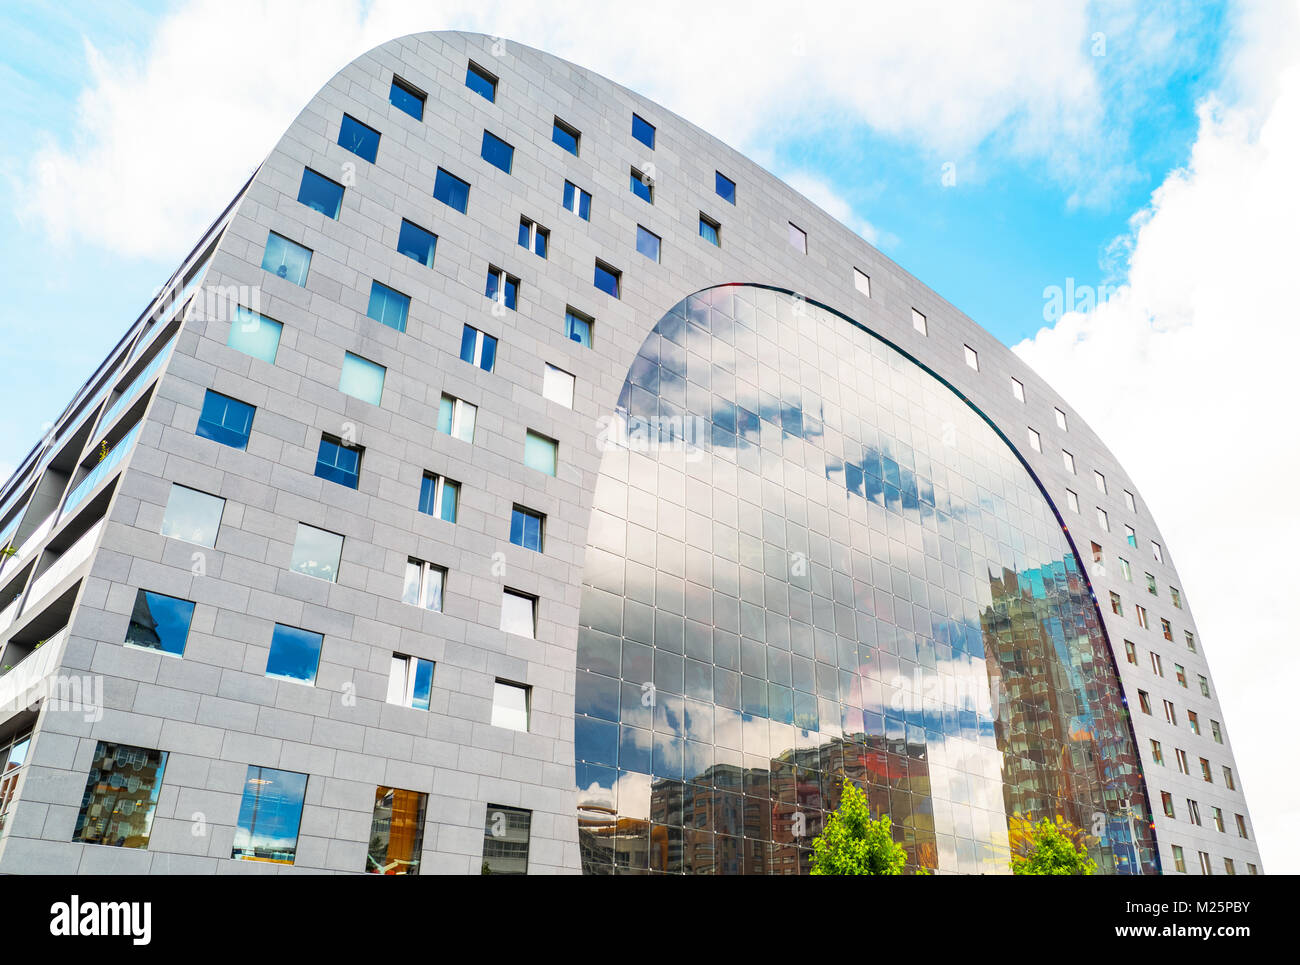 Netherlands, Rotterdam, The modern architectures of the Markthal - Stock Image